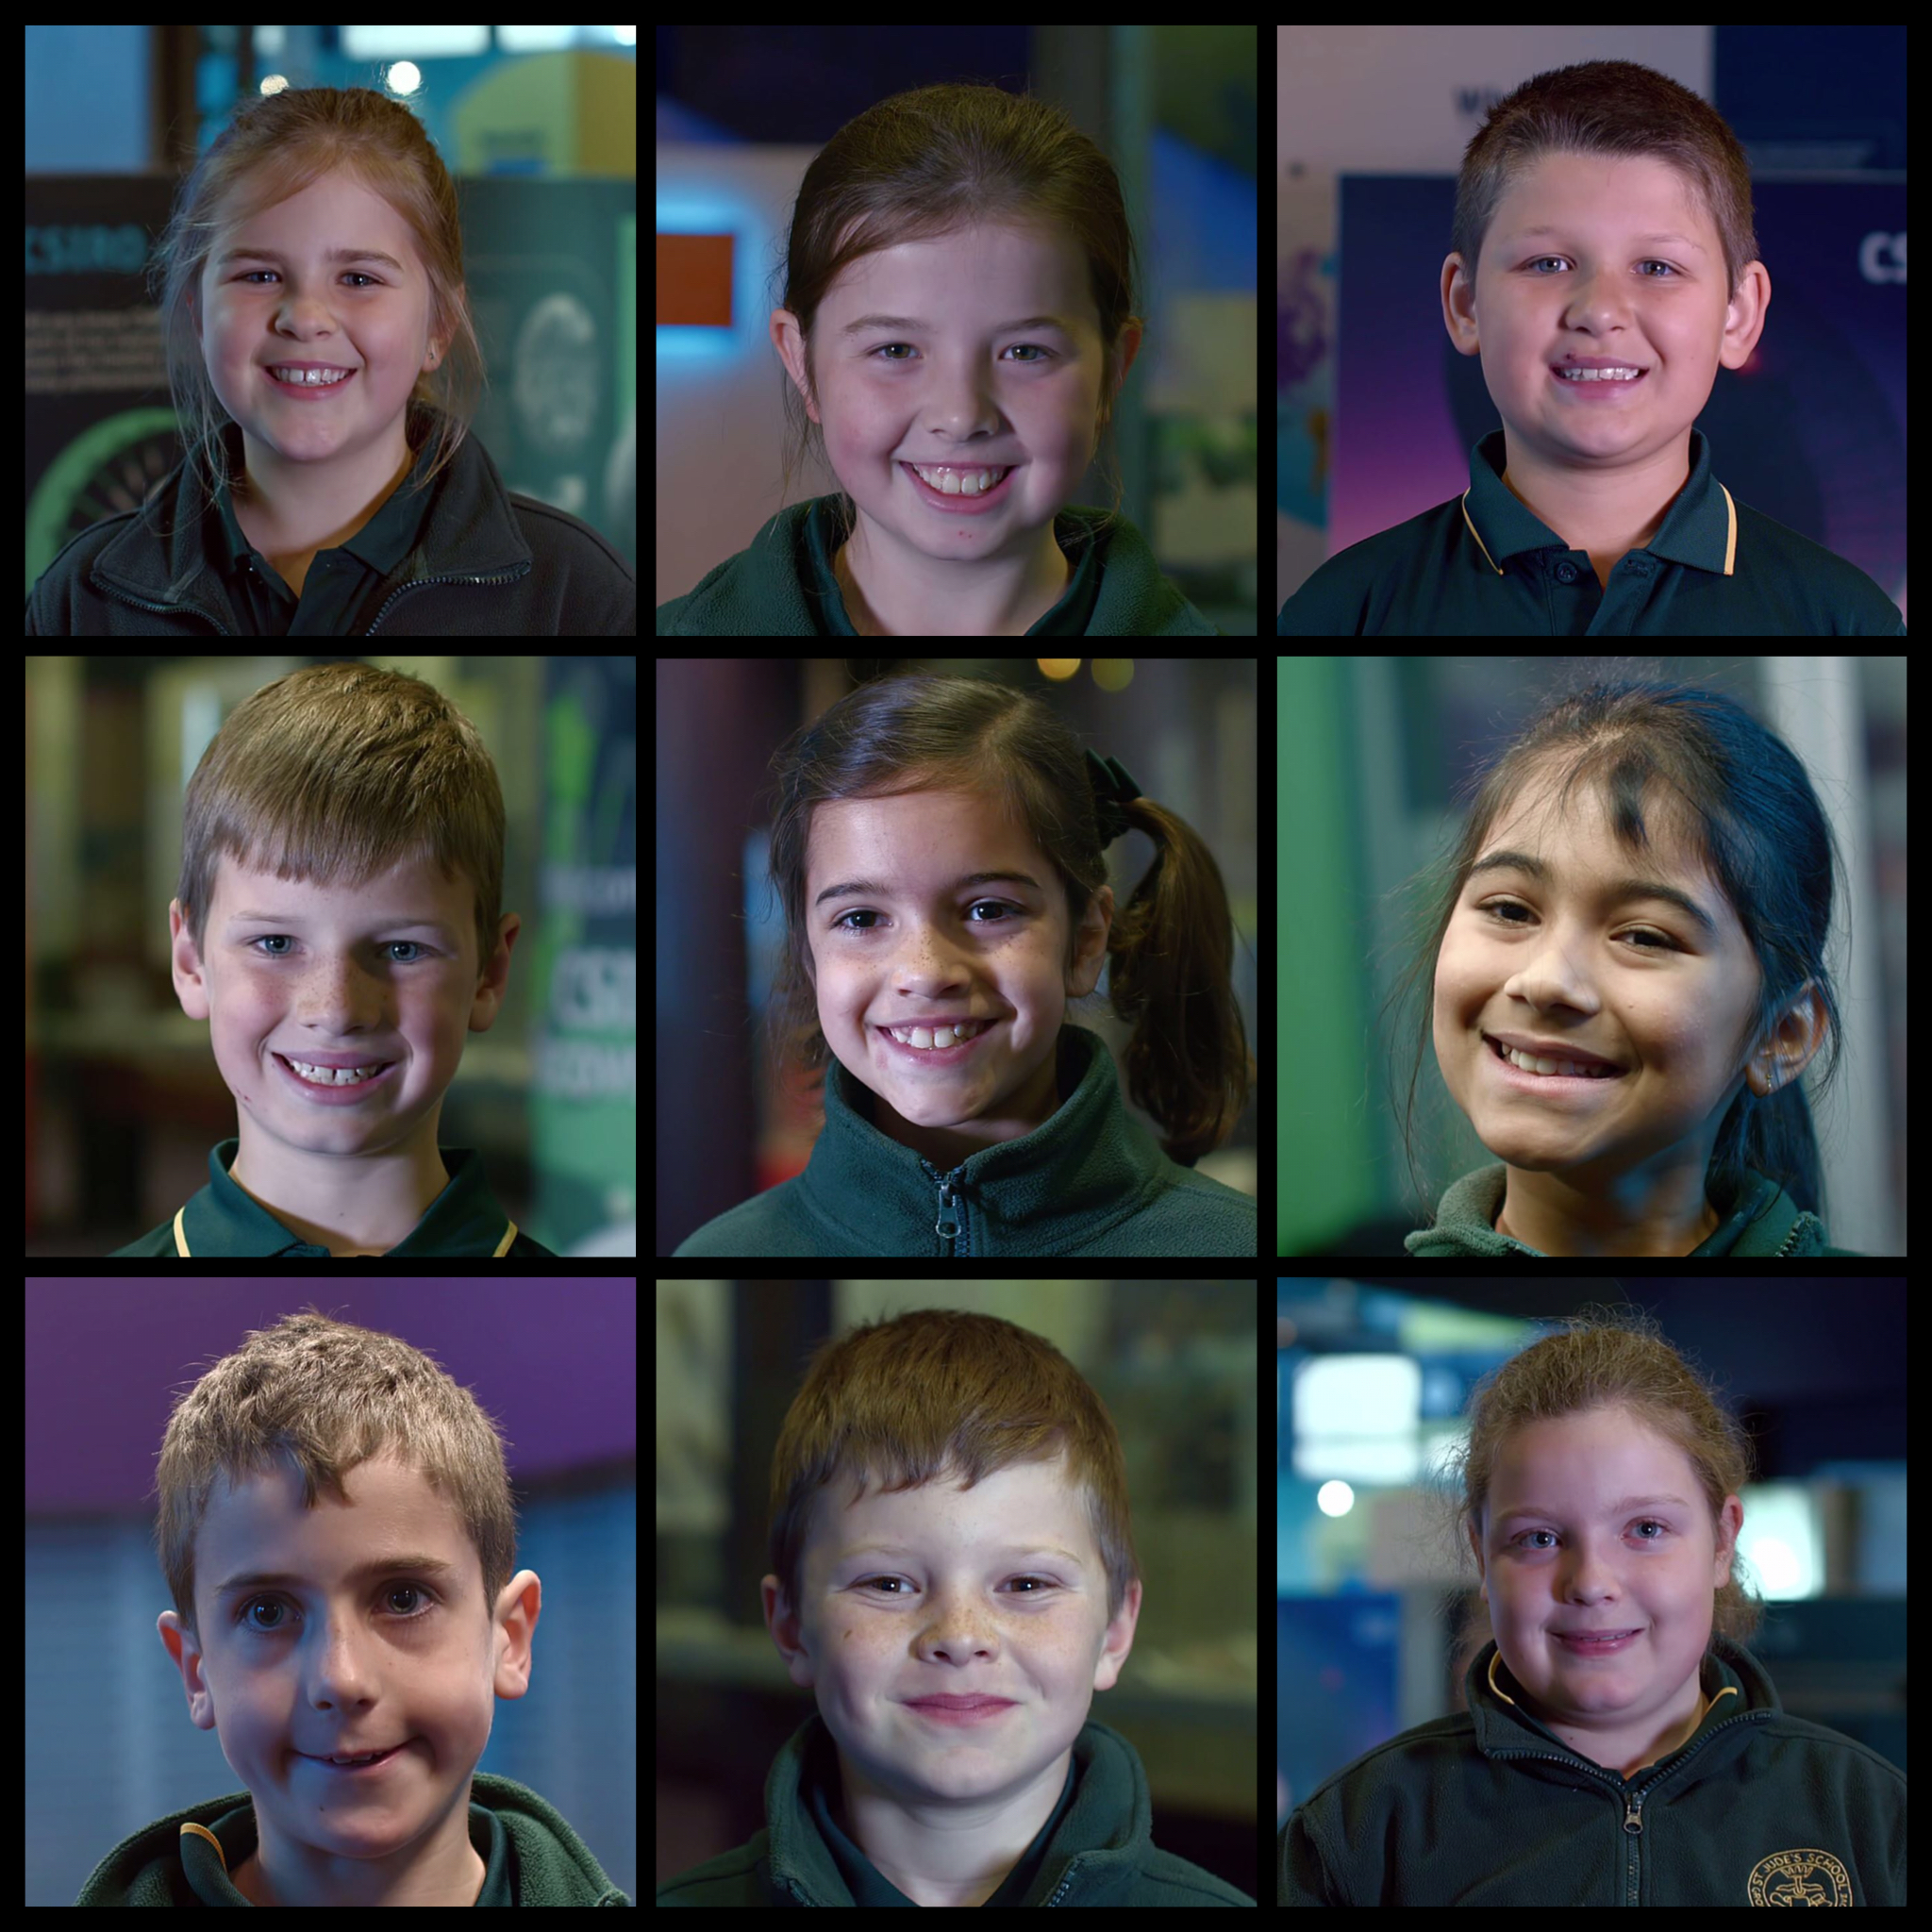 Headshots of nine primary school students arranged in a grid.